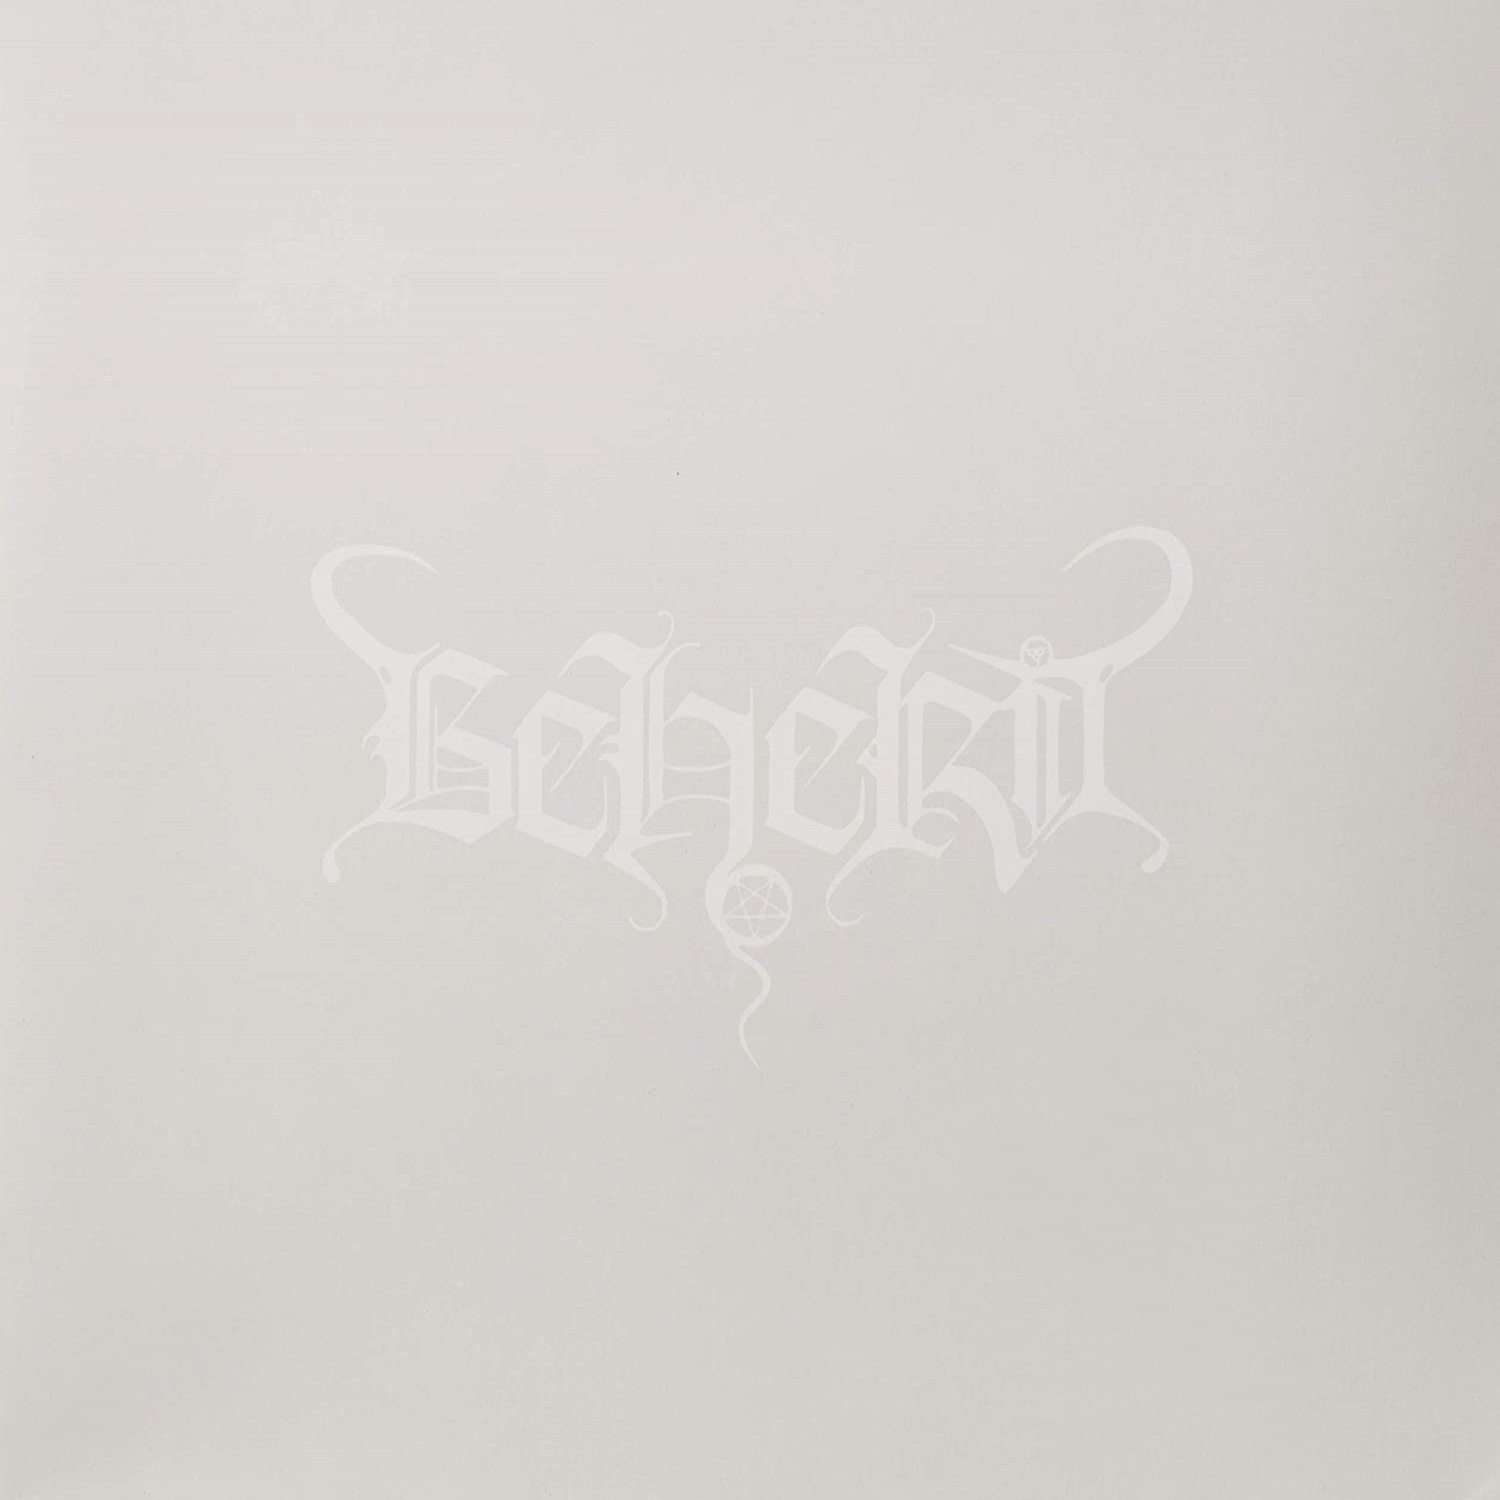 Review for Beherit - Electric Doom Synthesis